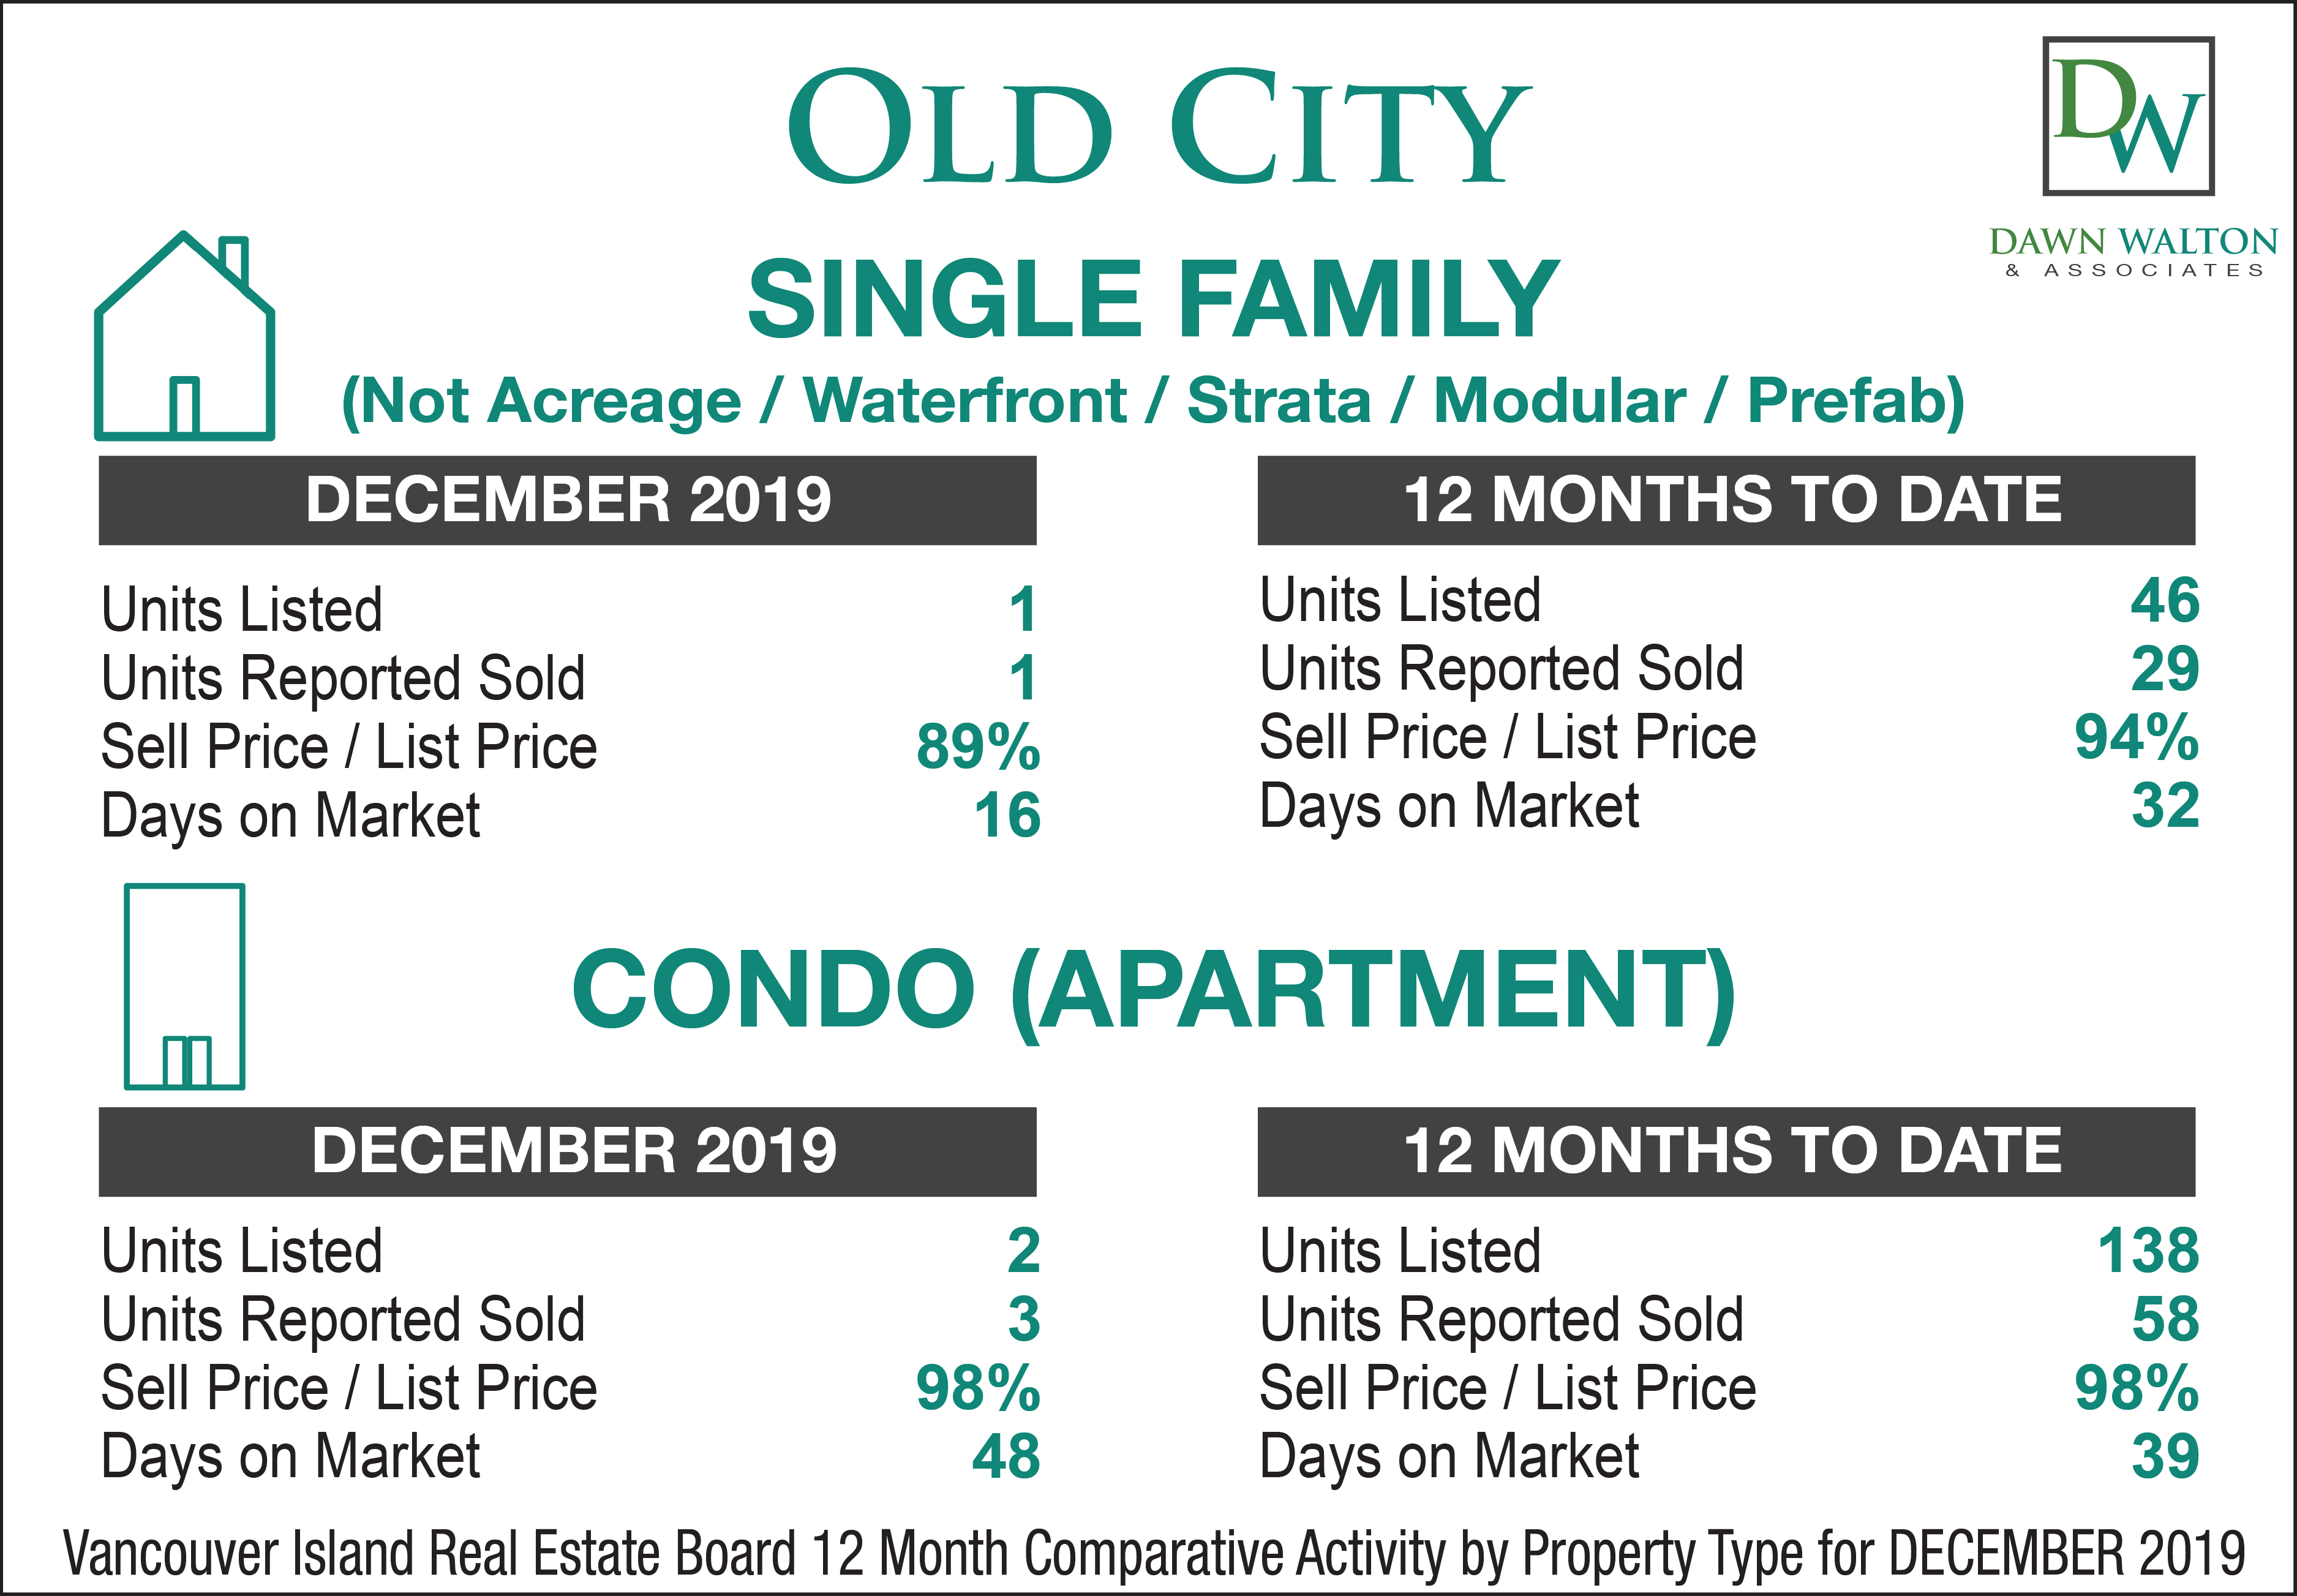 Old City Real Estate Market Stats December  2019 - Nanaimo Realtor Dawn Walton